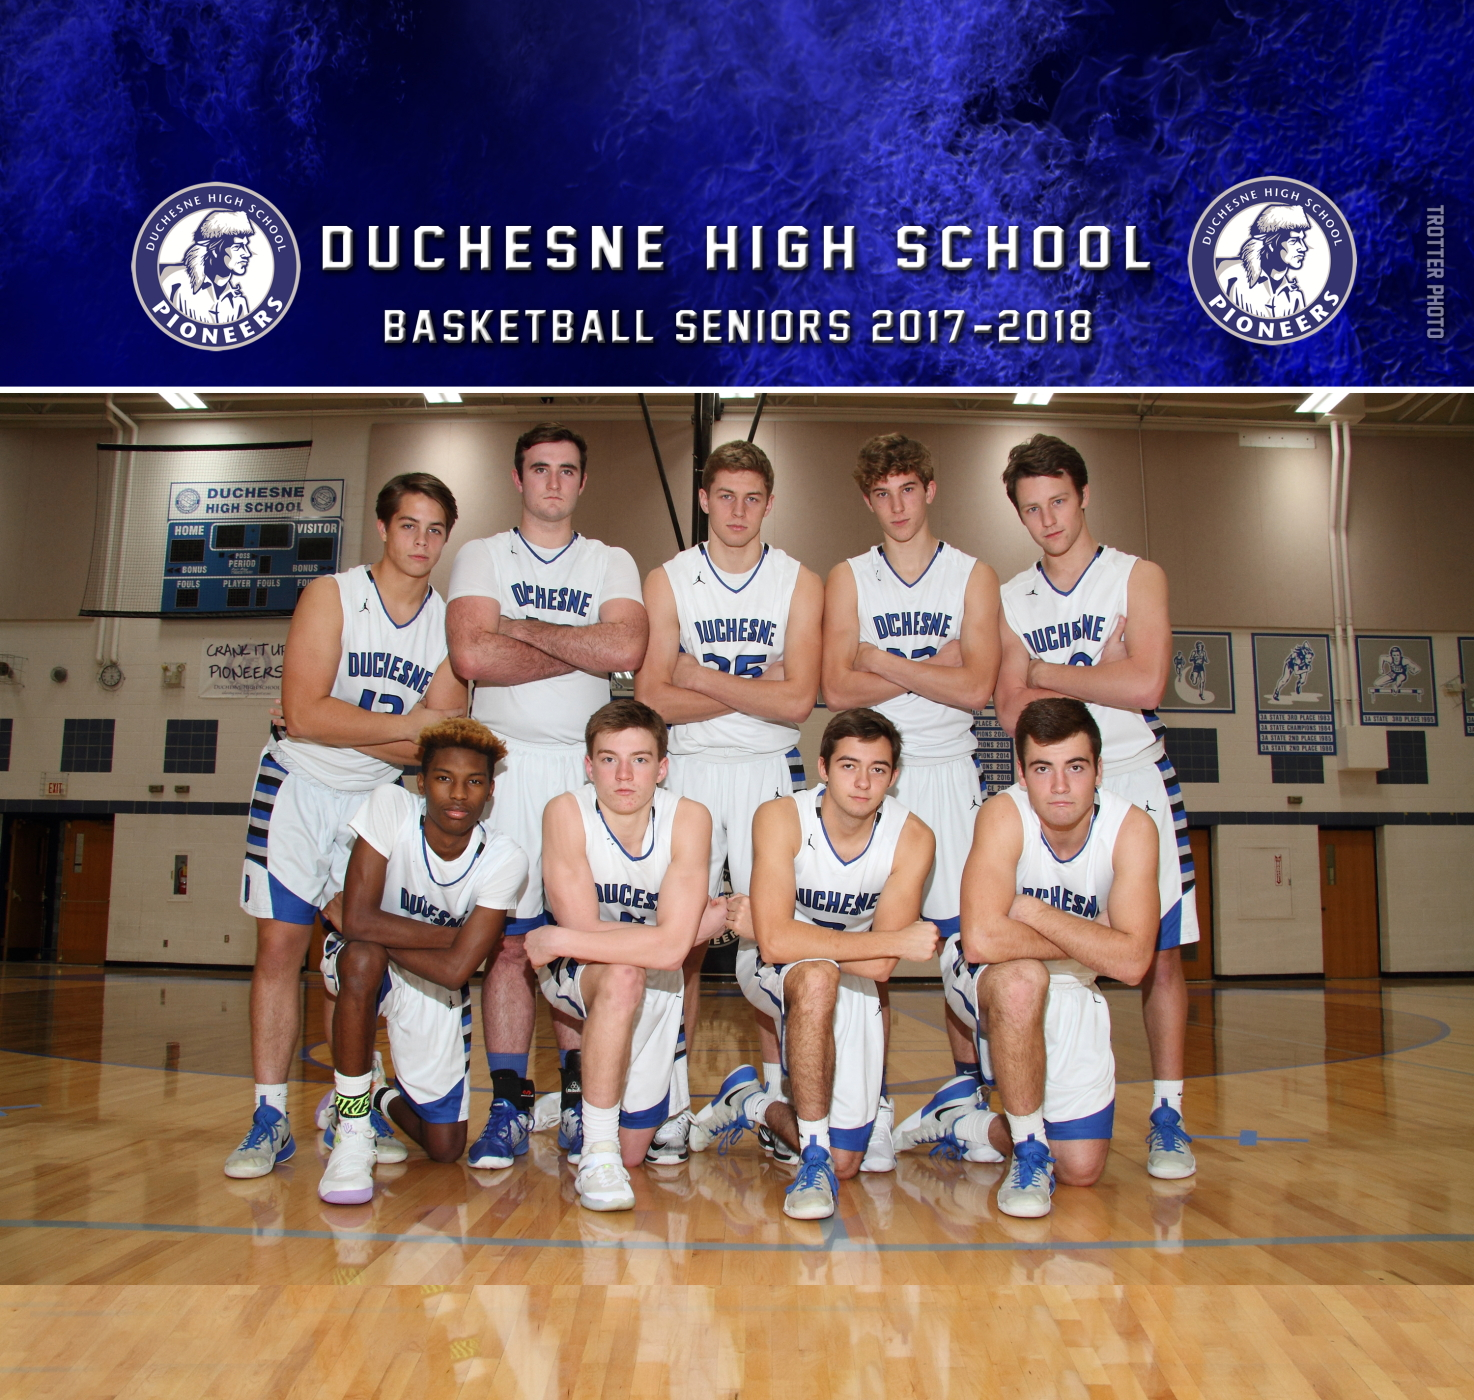 Duchesne High School Soccer Schedule High School Boys Basketball Pictures To Pin On Pinterest